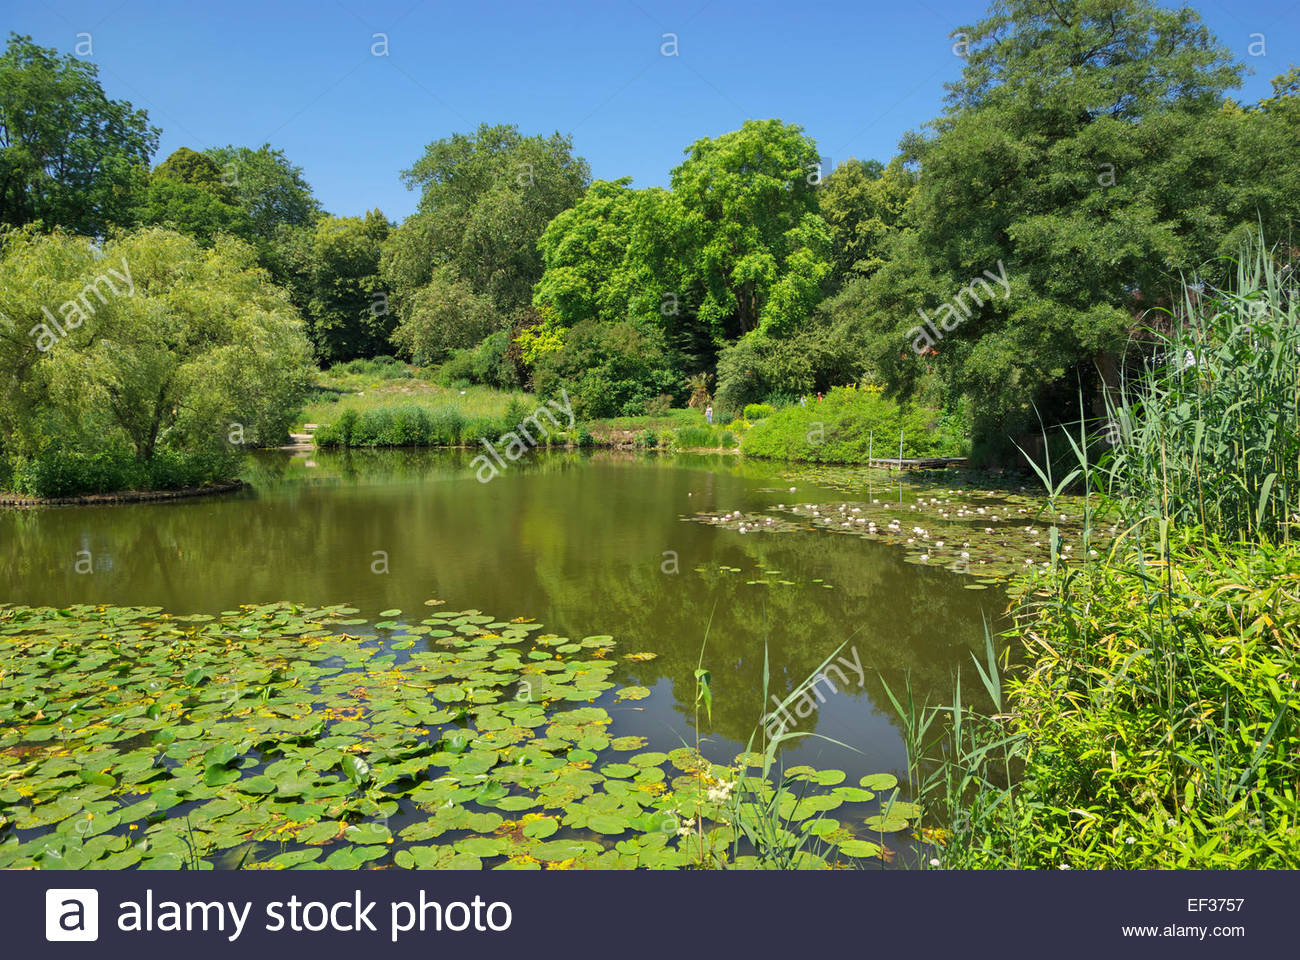 Water lilies, bamboo and various aquatic plants surround a pond at the botanical garden of University of Münster, - Stock Image